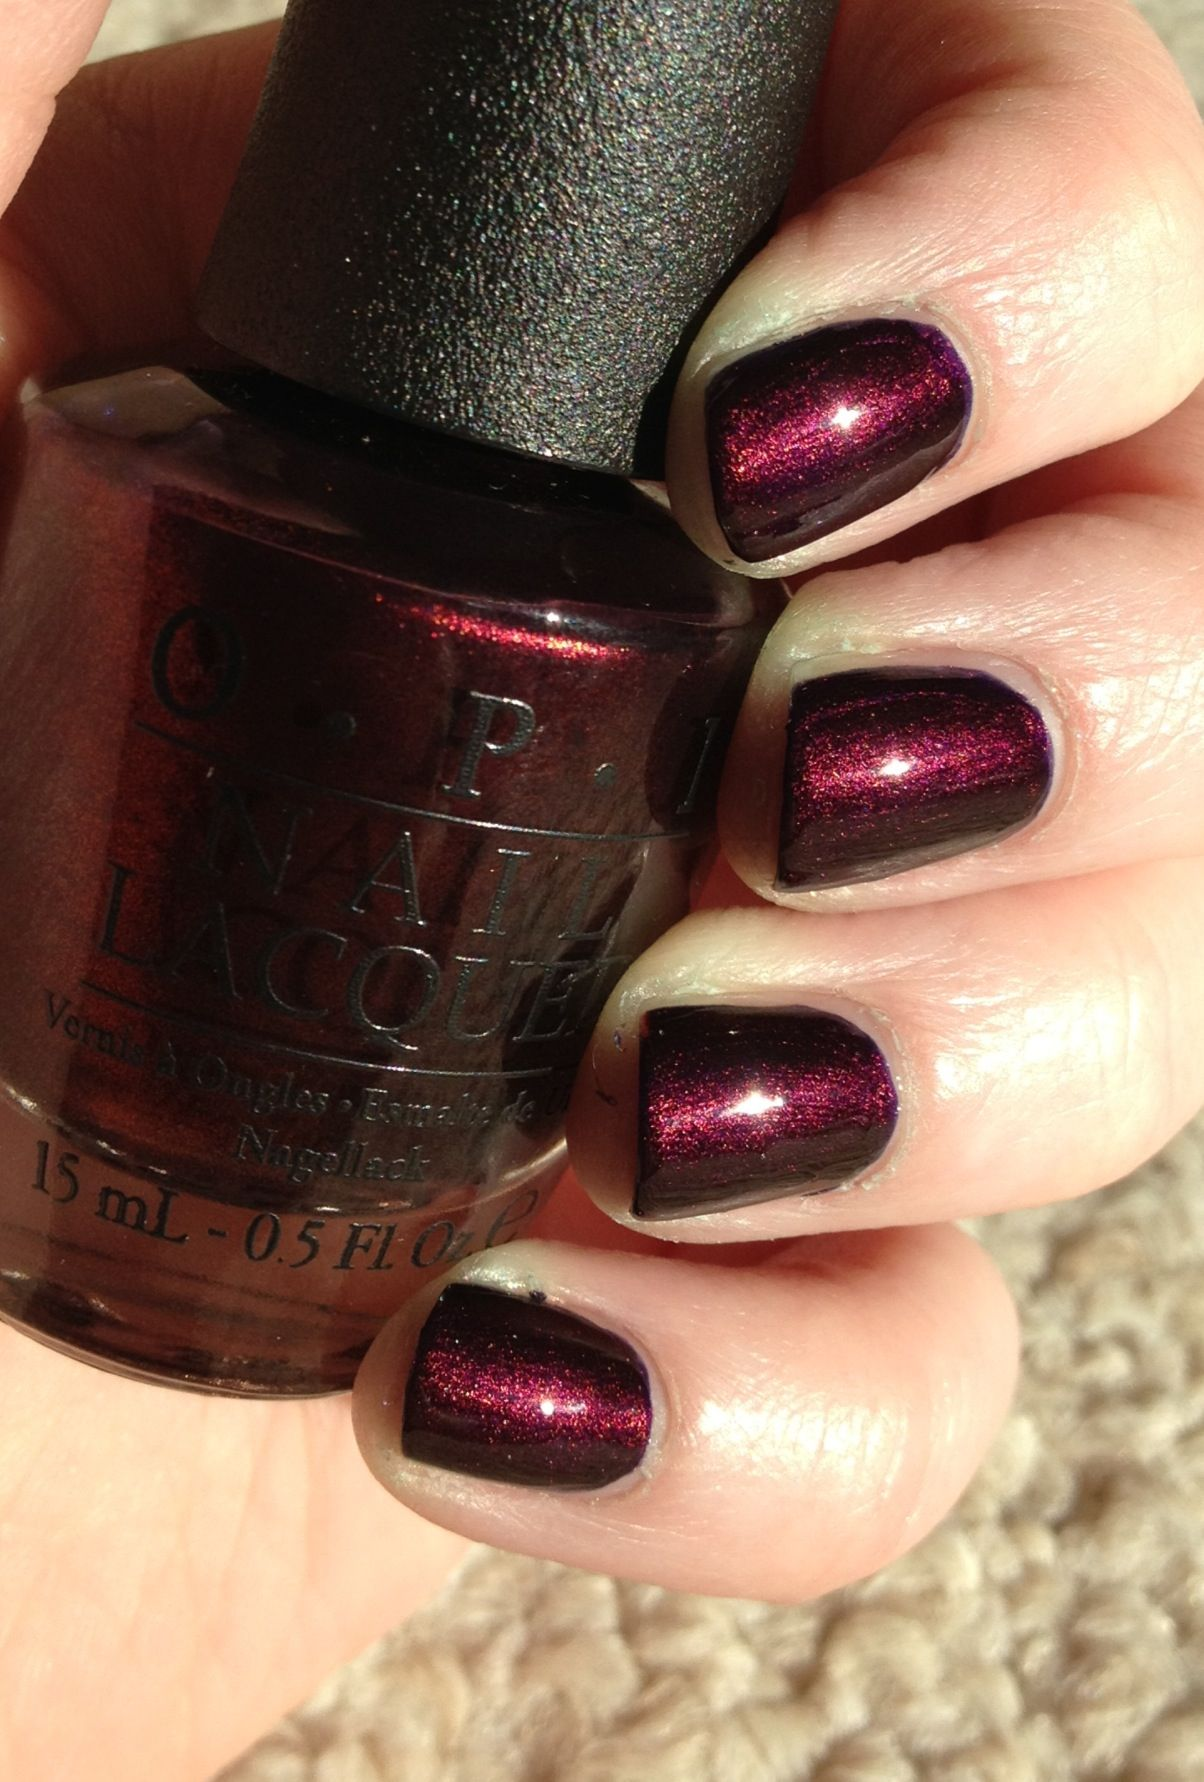 OPI - Every month is Oktoberfest | My Polish Collection | Pinterest ...